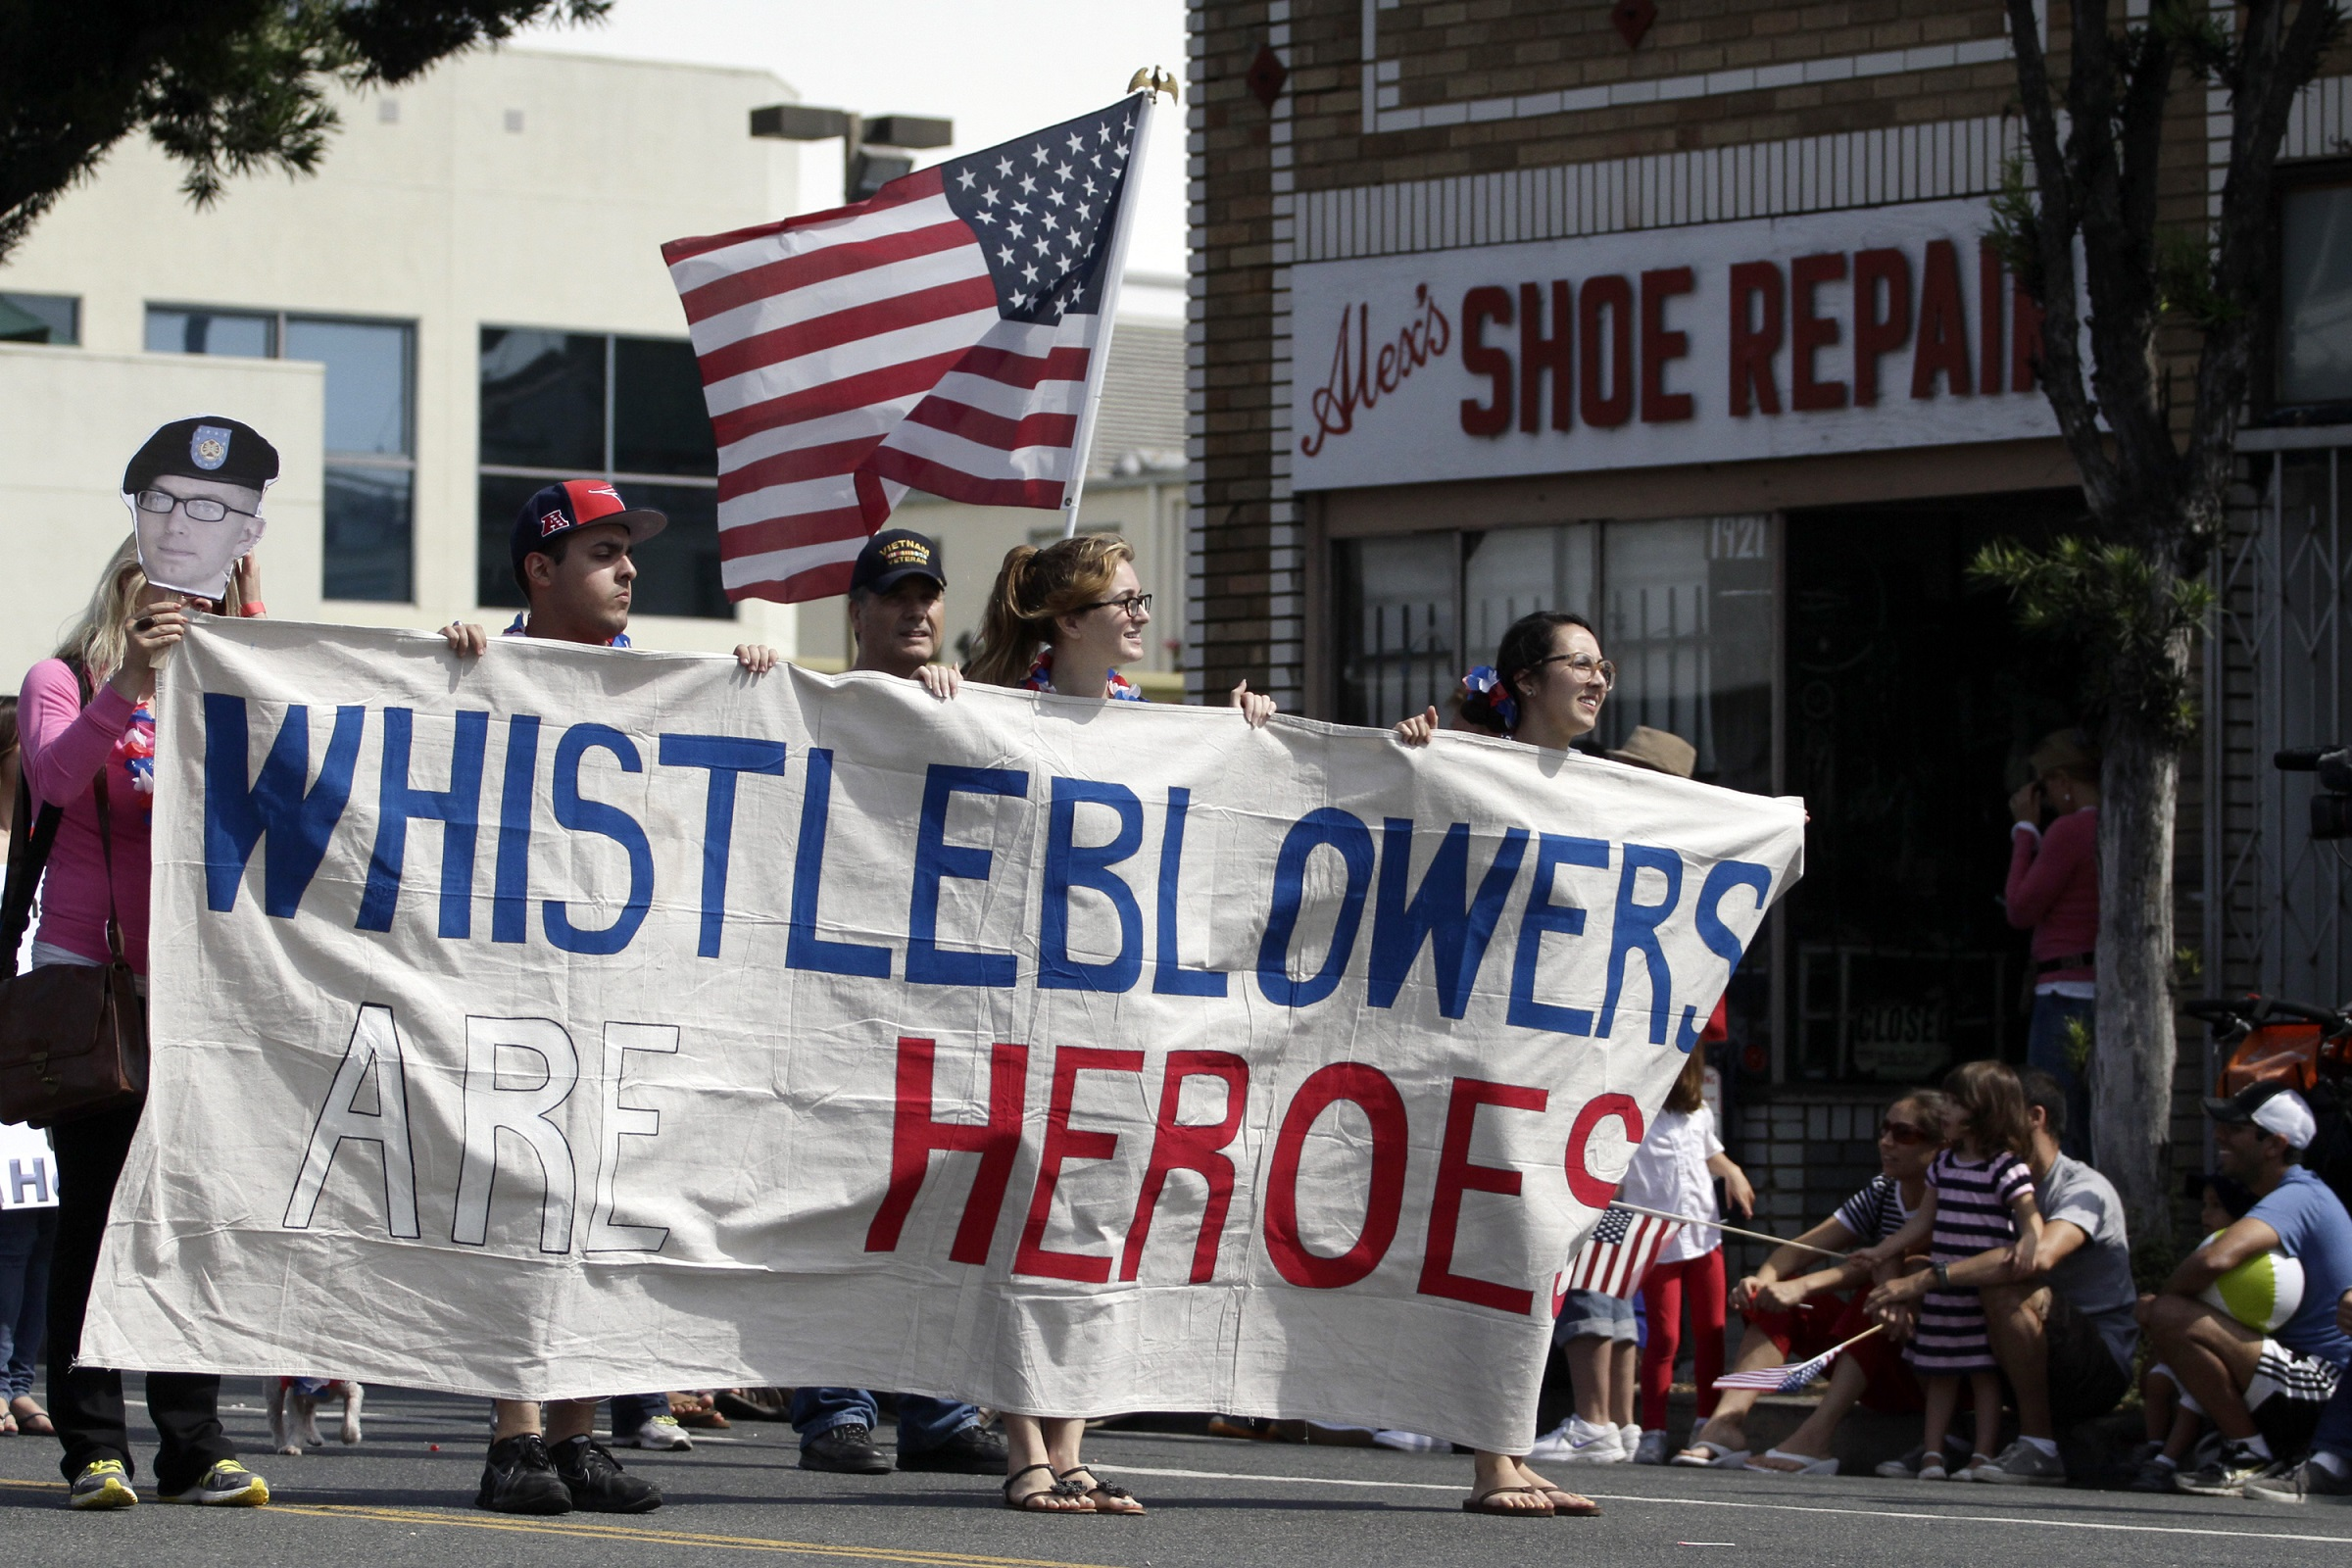 Supporters of whistleblowers march in Santa Monica's seventh annual Fourth of July parade in Santa Monica, California, July 4, 2013.  REUTERS/Jonathan Alcorn (UNITED STATES - Tags: ANNIVERSARY SOCIETY) - RTX11CYK